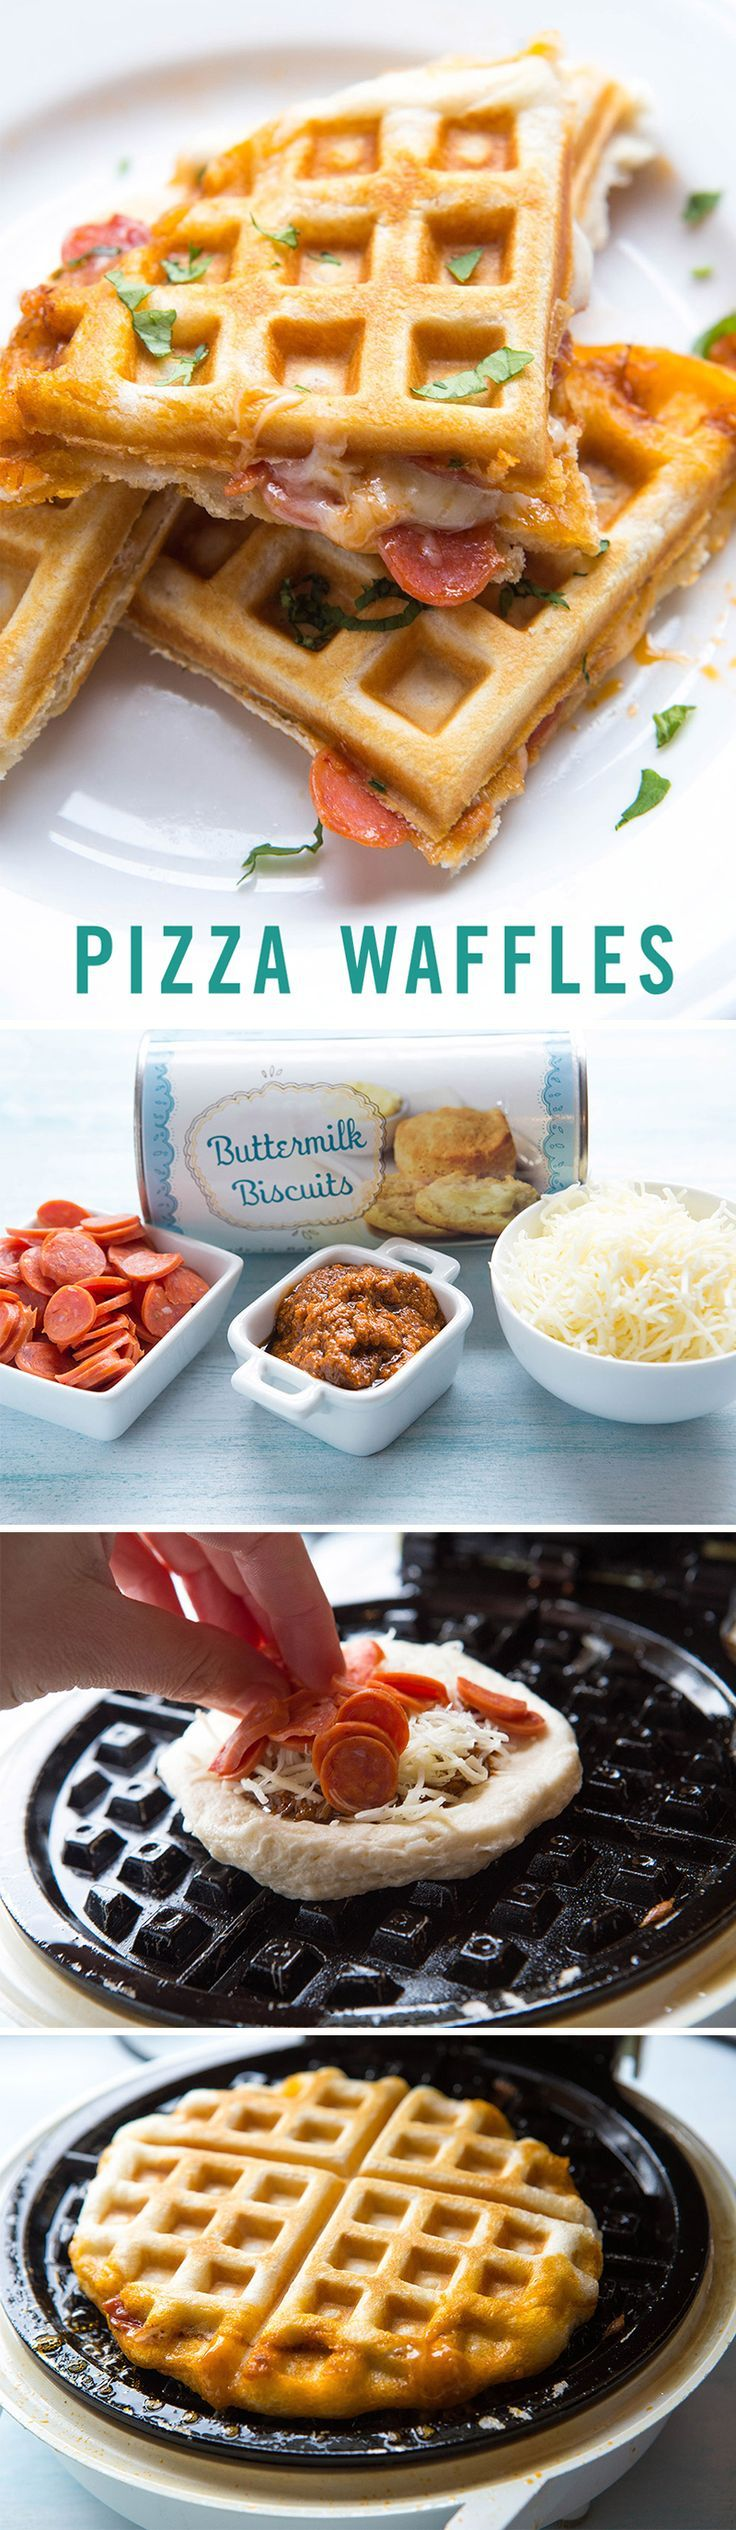 We love pizza and we love waffles, can you imagine the magical meal we'd have if we combined the two? Follow this tasty homemade recipe for stuffed pizza waffles and indulge for tonight's dinner.